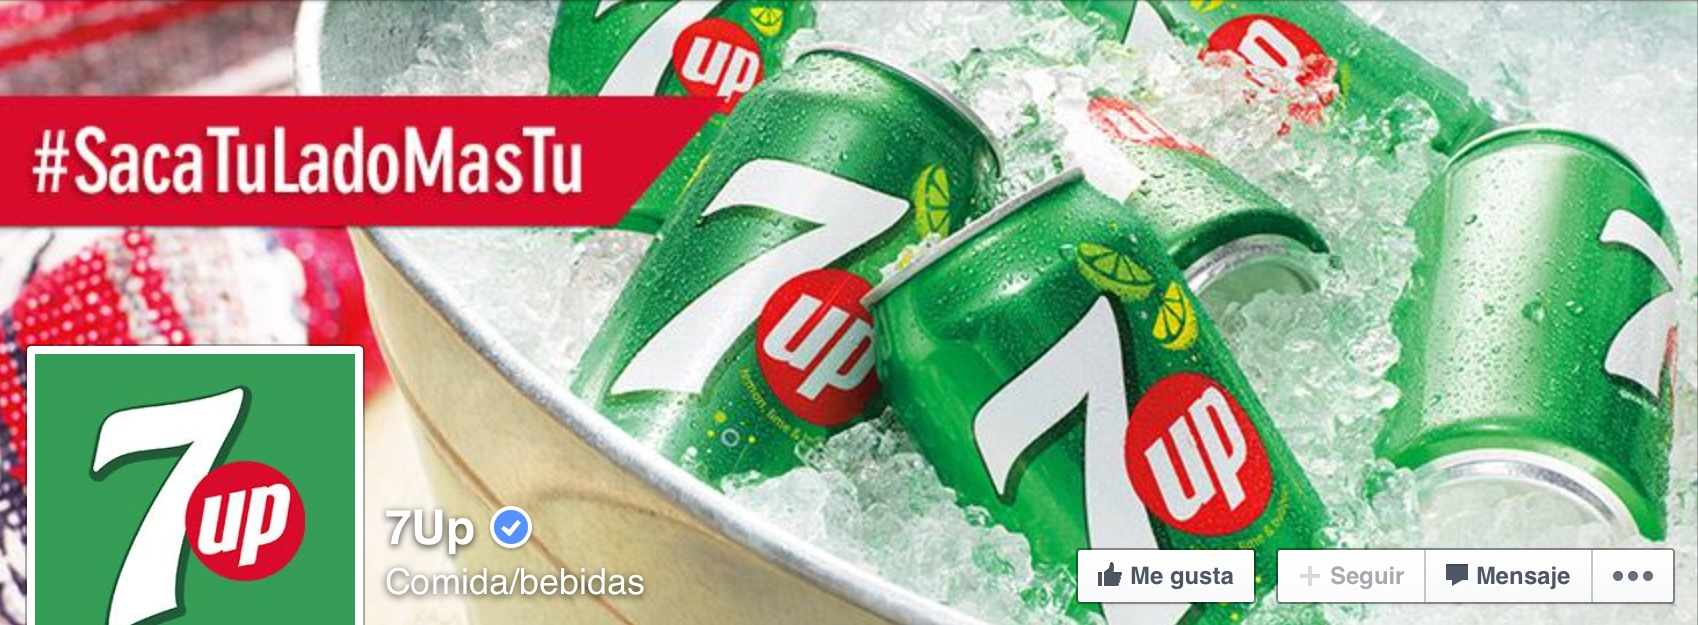 1_7UP